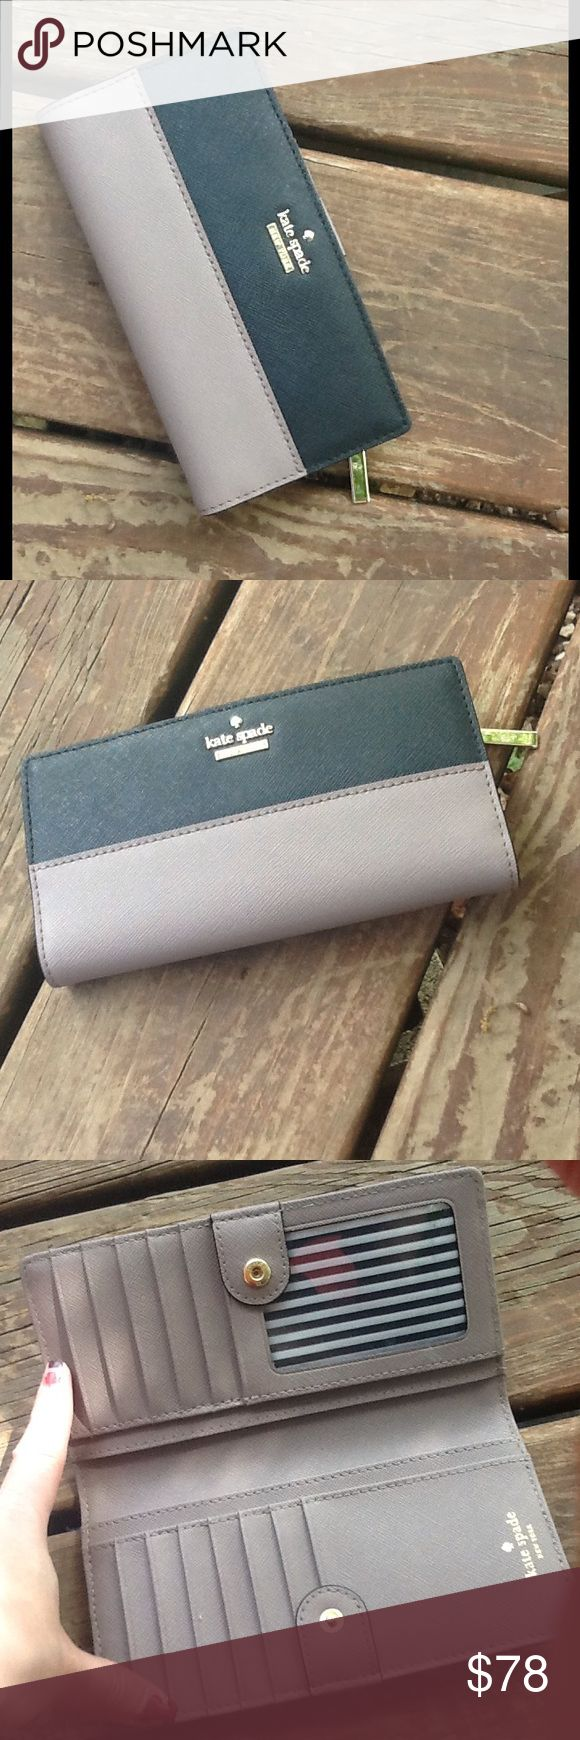 """Kate Spade Cameron Street Lacey Wallet. ♠️❤️ MATERIAL crosshatched leather with matching trim 14-karat gold plated hardware FEATURES medium continental wallet with snap closure 12 credit card slots, one id slot, and two billfolds embossed ksny signature and light gold spade stud DETAILS 3.5""""h x 6.6""""w Only Flaw is small pen ink stain, below zipper. No Trades. No Holds. Reasonable Offers Considered. kate spade Bags Wallets"""